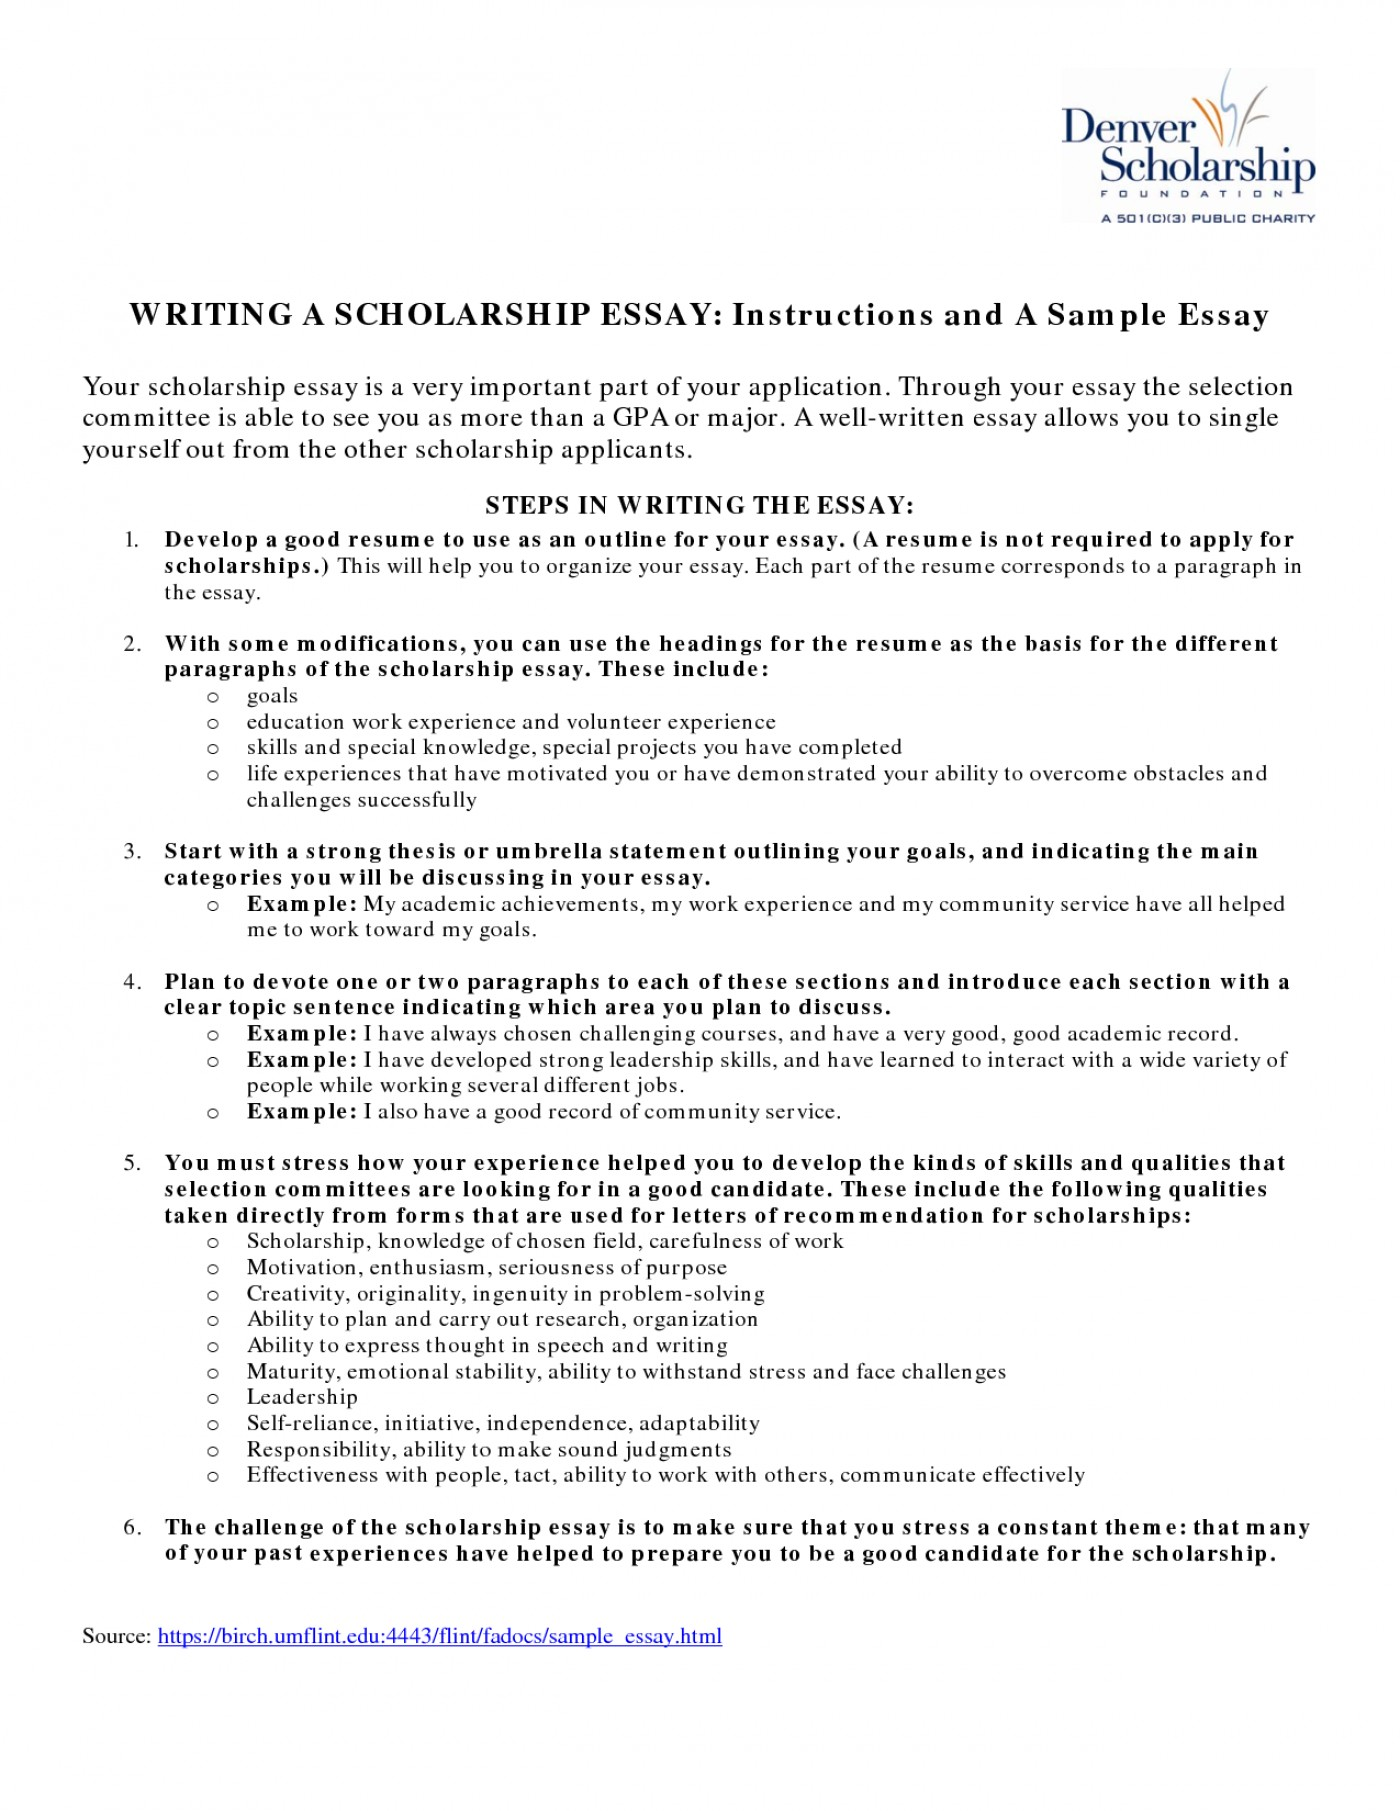 023 Essay Example What To Write For Scholarship About Yourself On Tips Writing Effective Essays Awesome A How That Stands Out Your Career Goals Financial Need 1400